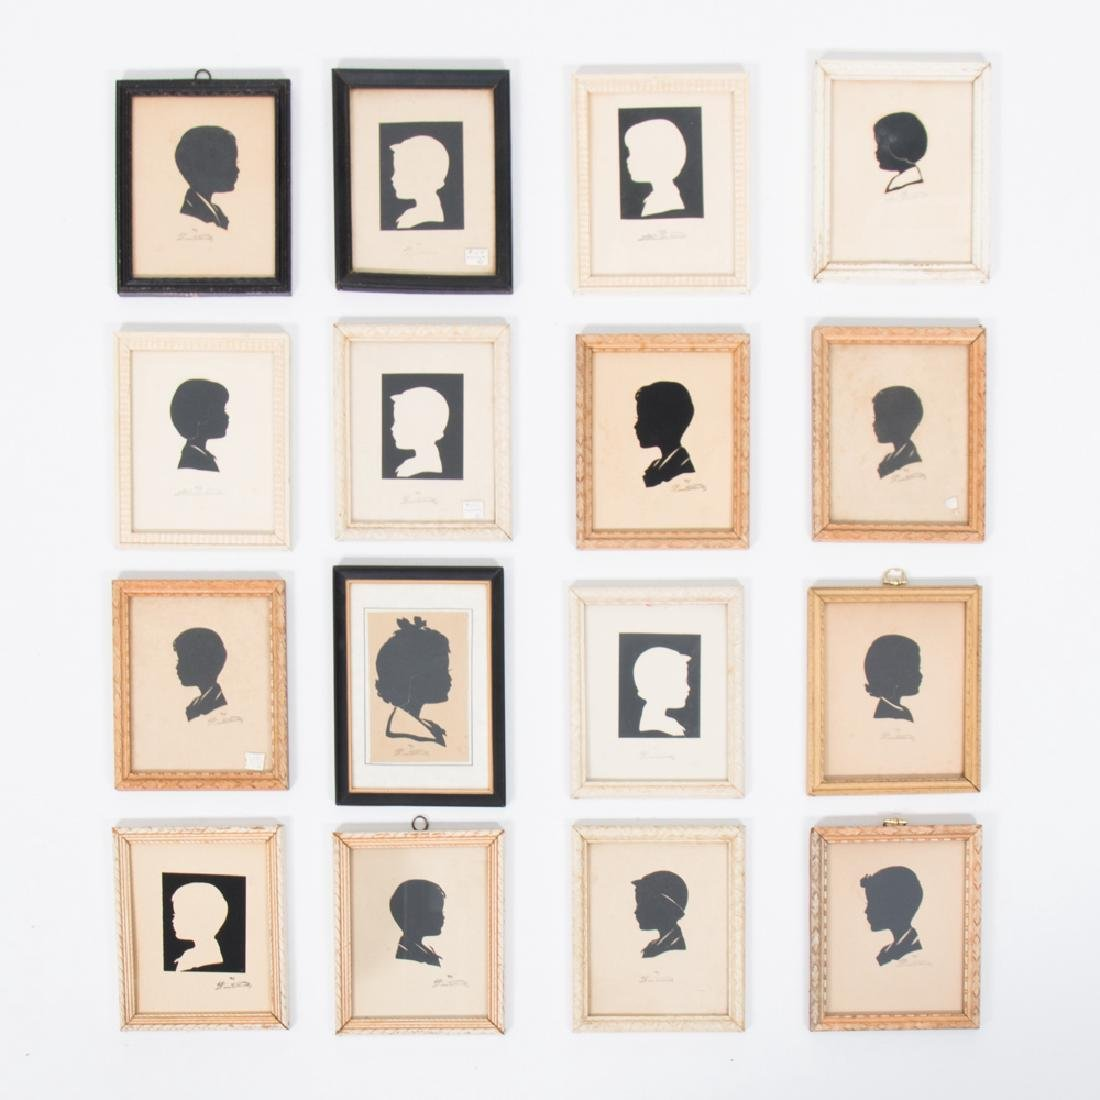 A Collection of Sixteen Cut Paper Silhouettes Depicting